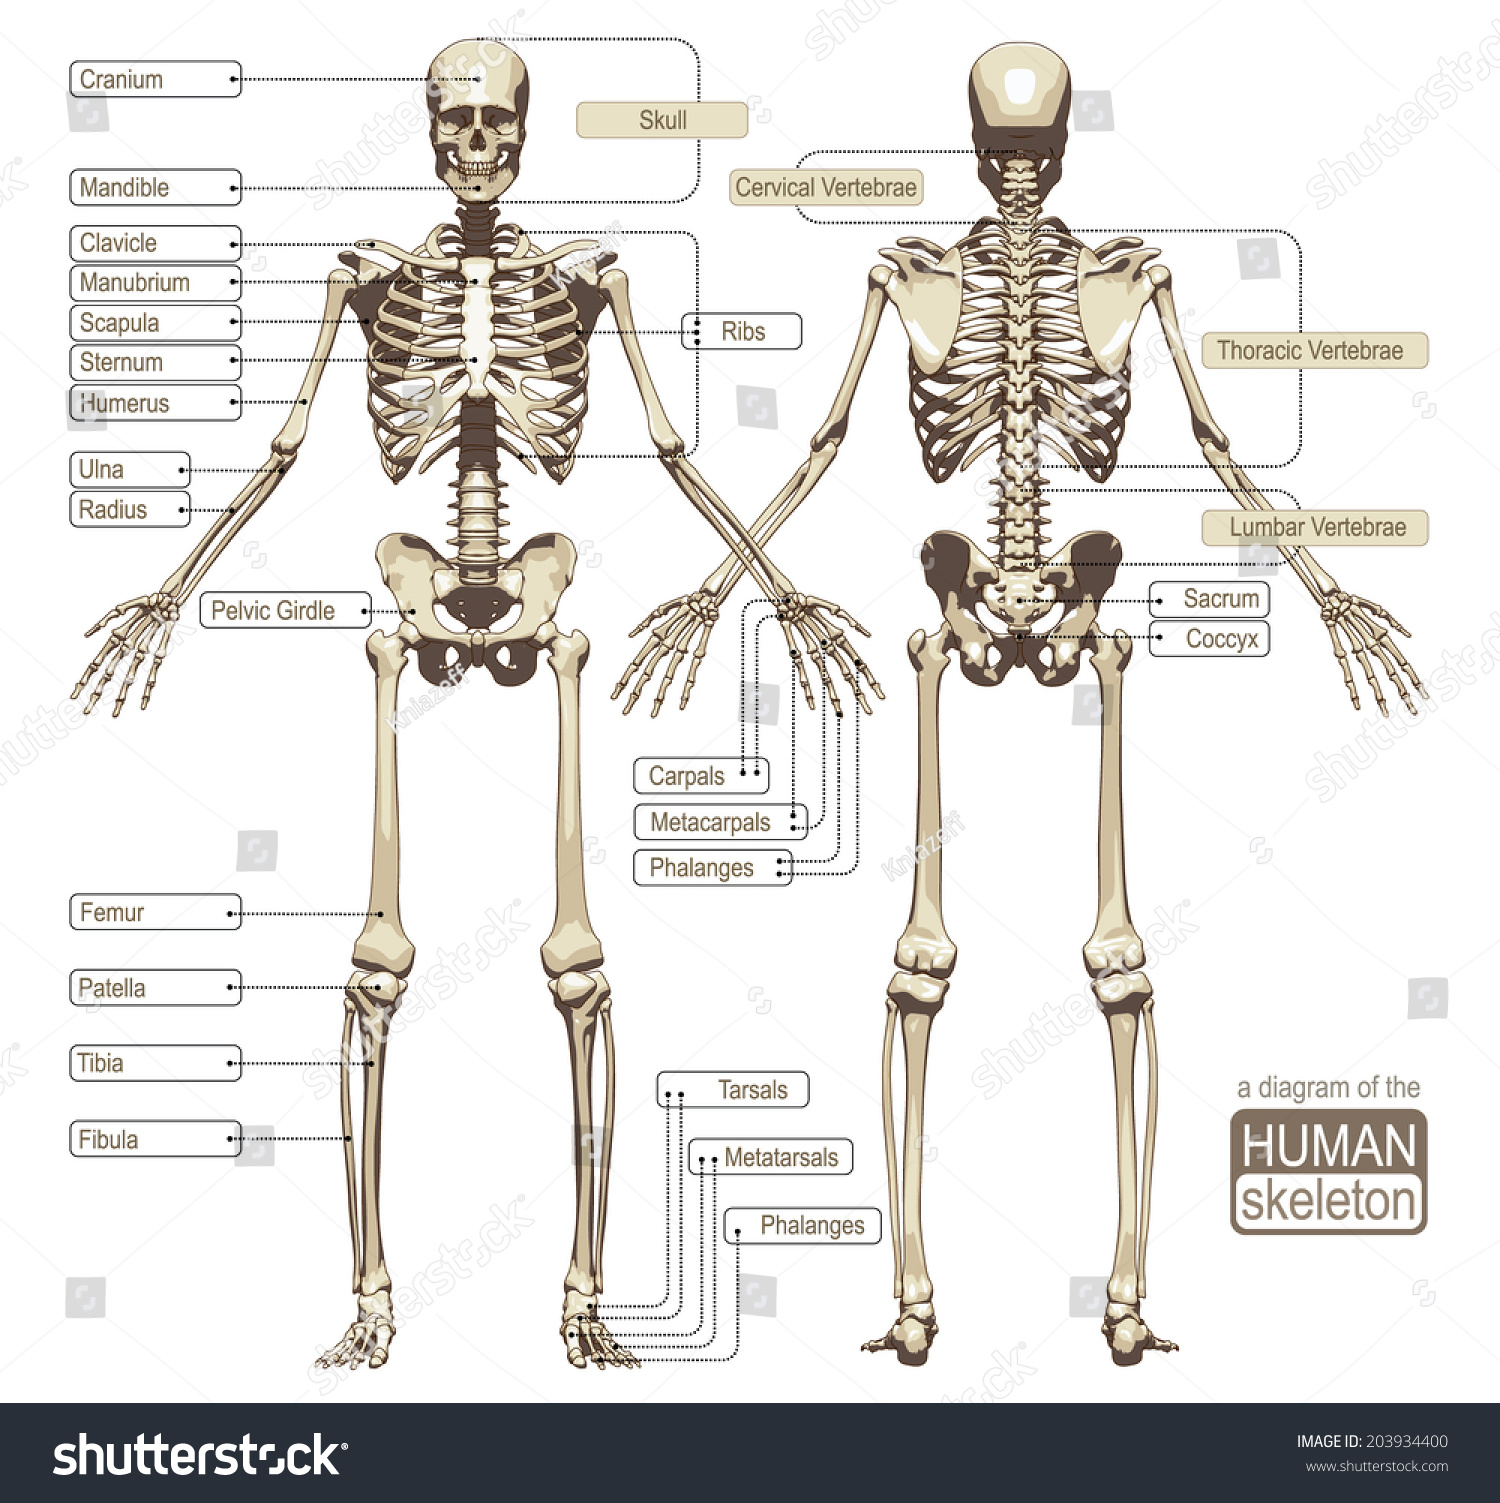 skeletal system anterior view diagram beef cuts parts of a cow human skeleton main stock vector